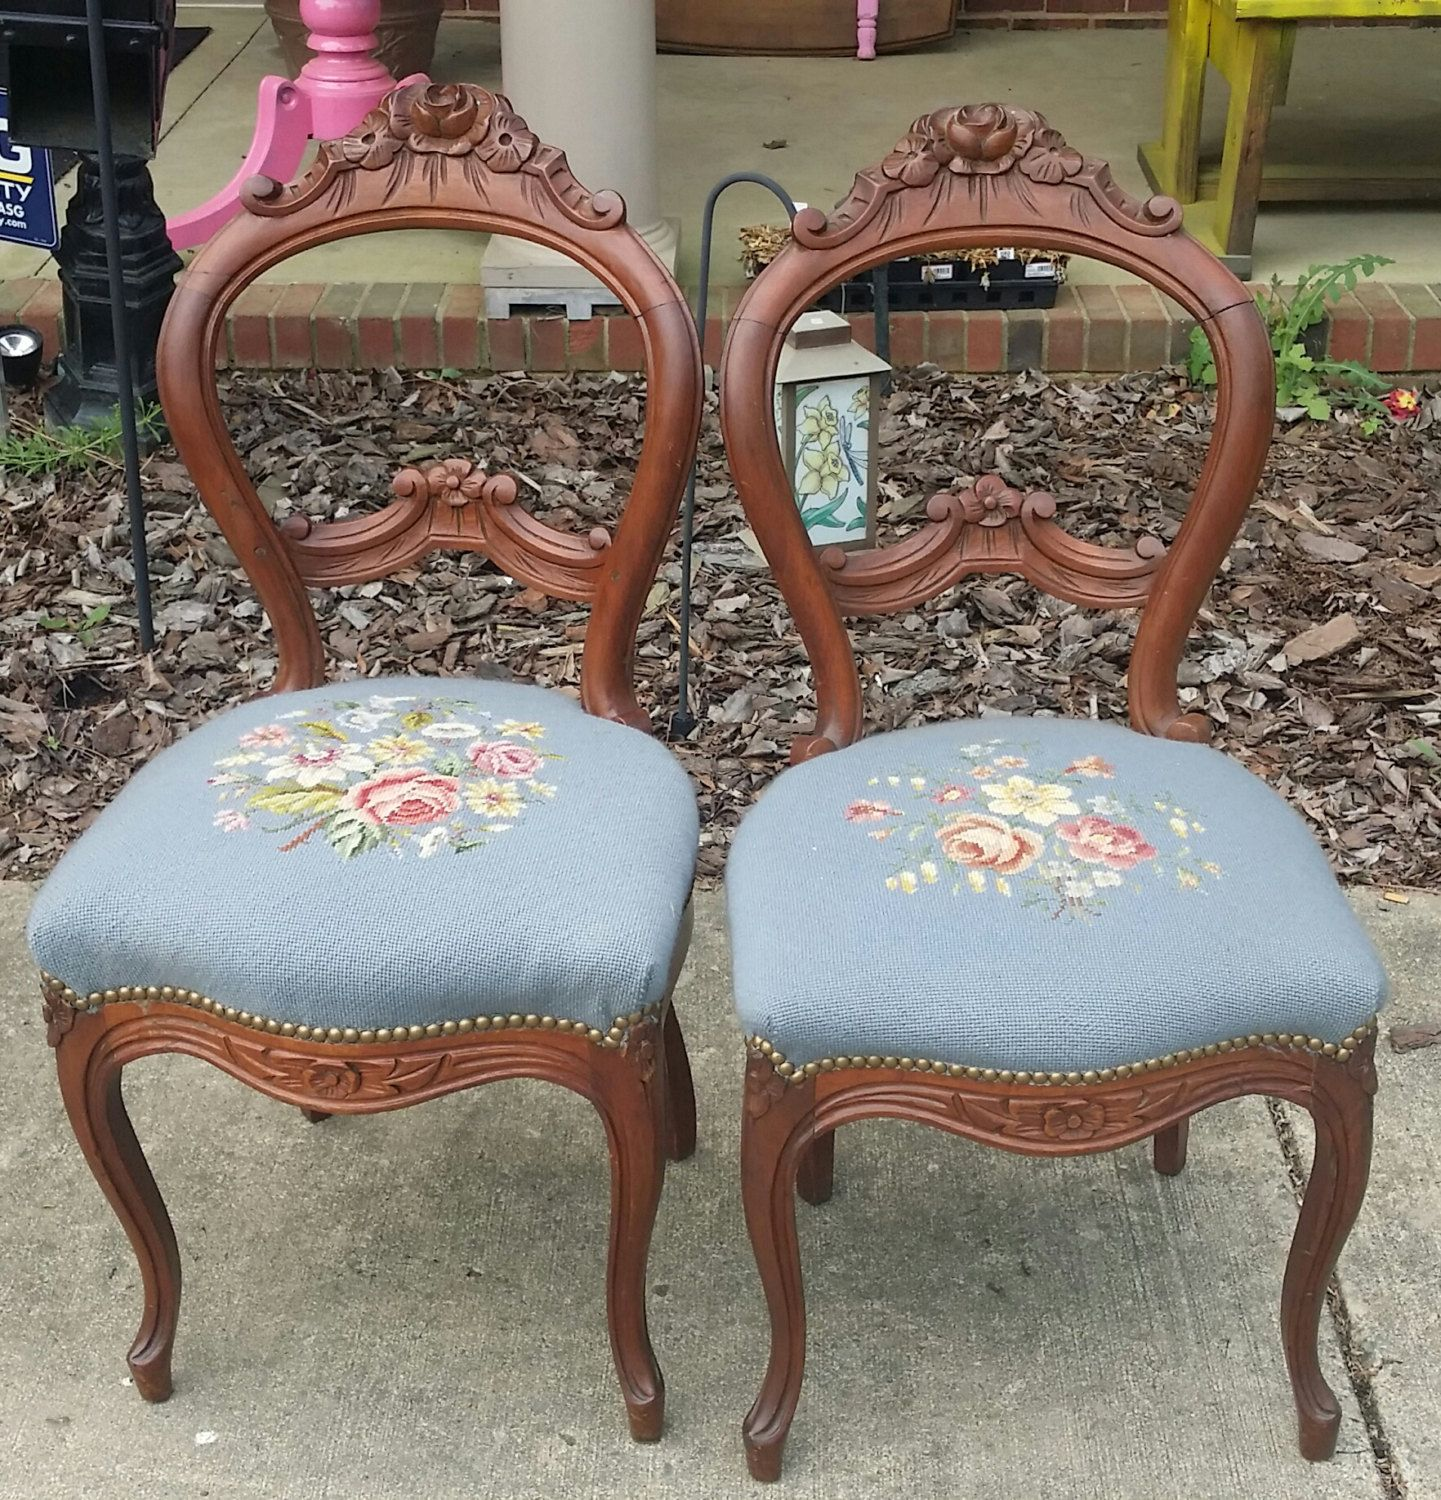 Victorian era Balloon back chairs with rose carvings by PastTimesKeepsakes  on Etsy - Victorian Era Balloon Back Chairs With Rose Carvings By